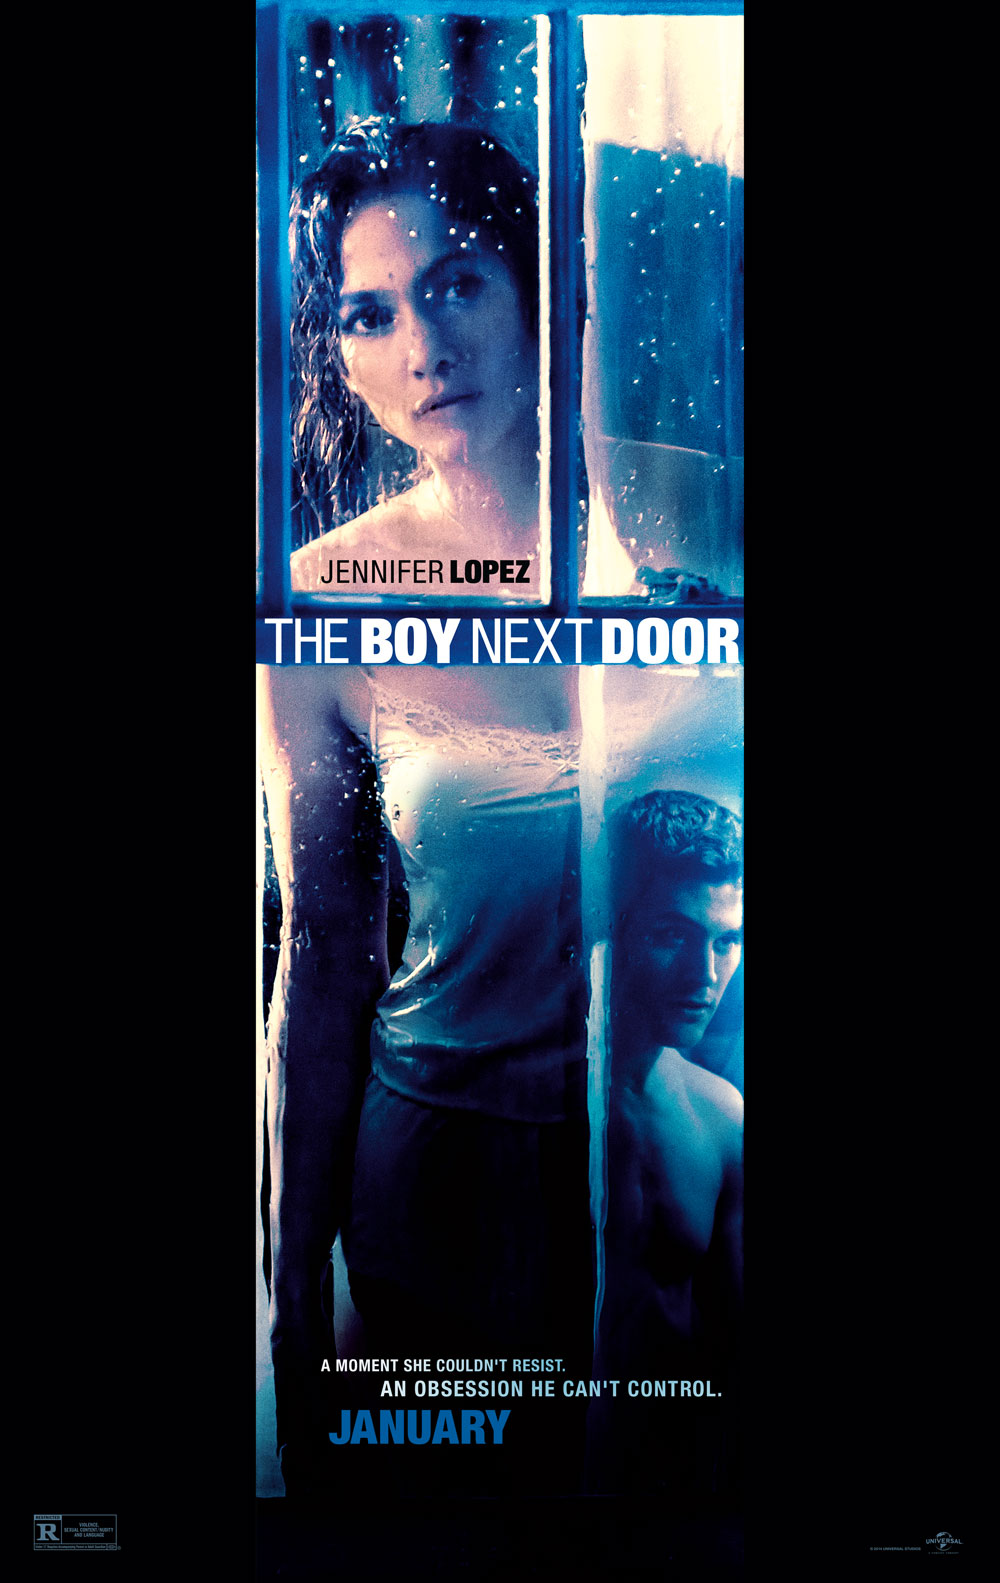 boy next door - The Boy Next Door Opens an Image Gallery; New Clips